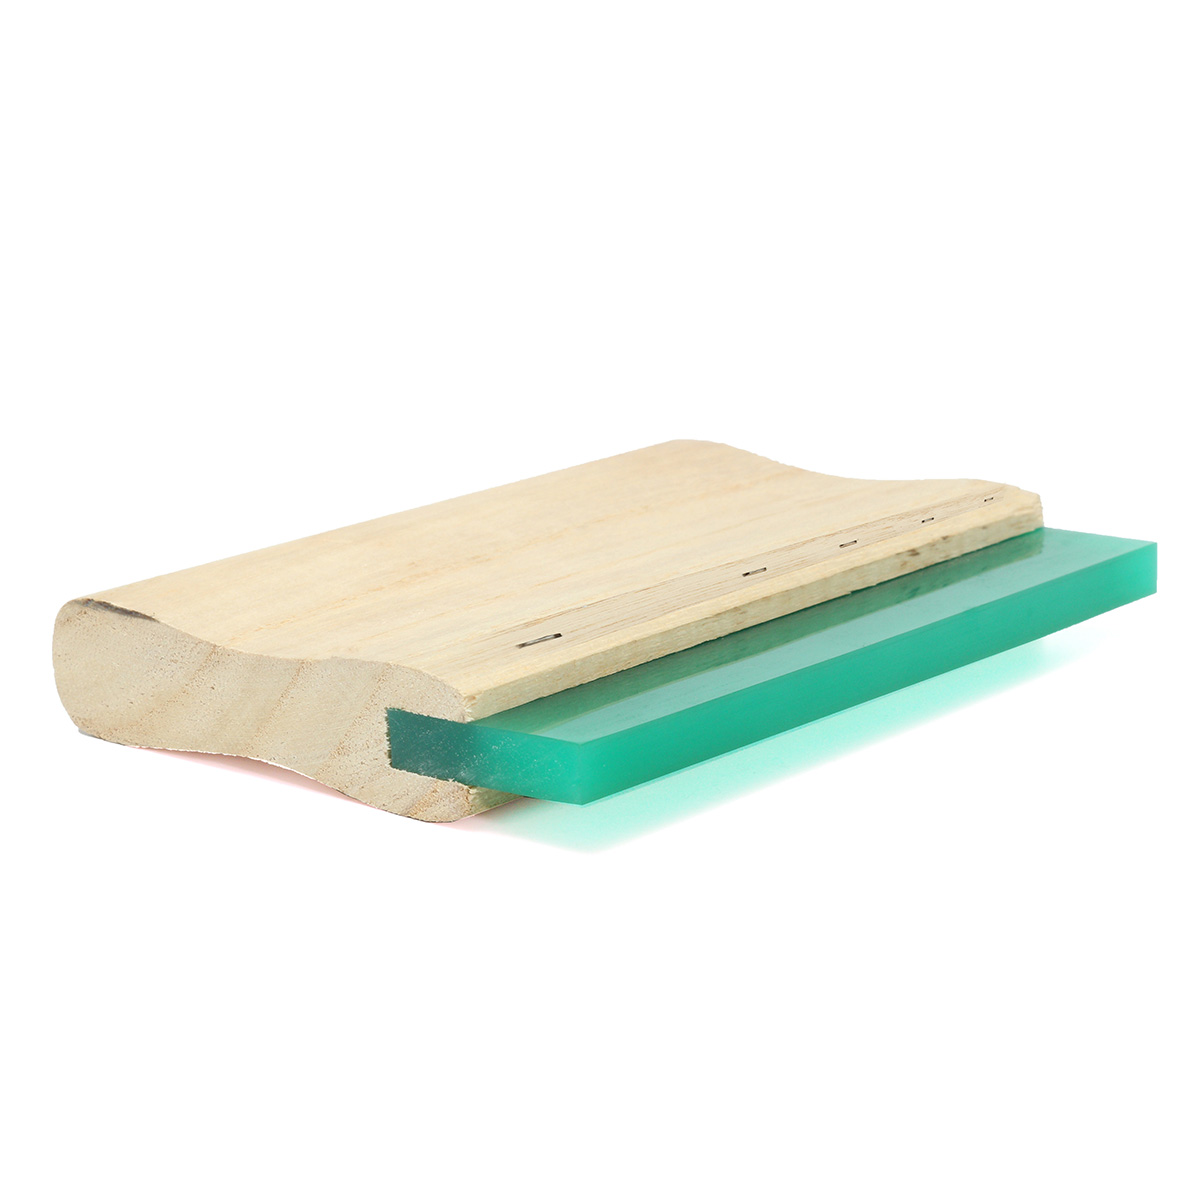 6Inch Silk Screen Printing Squeegee Ink Olily Flat Scaper Scratch Board Tools Kit